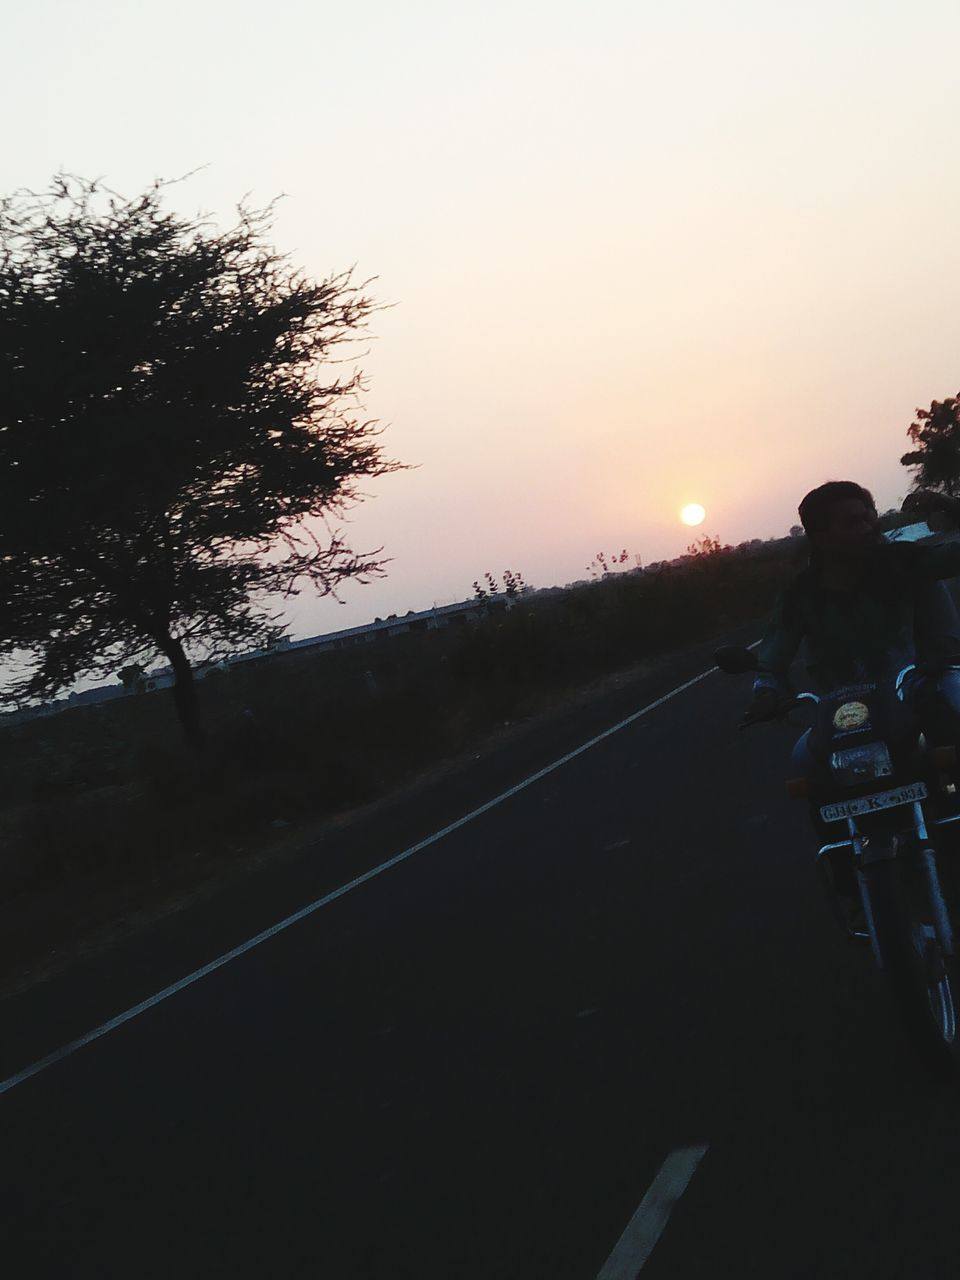 sunset, transportation, tree, road, nature, the way forward, real people, riding, bicycle, land vehicle, scenics, silhouette, outdoors, sky, landscape, men, two people, beauty in nature, day, people